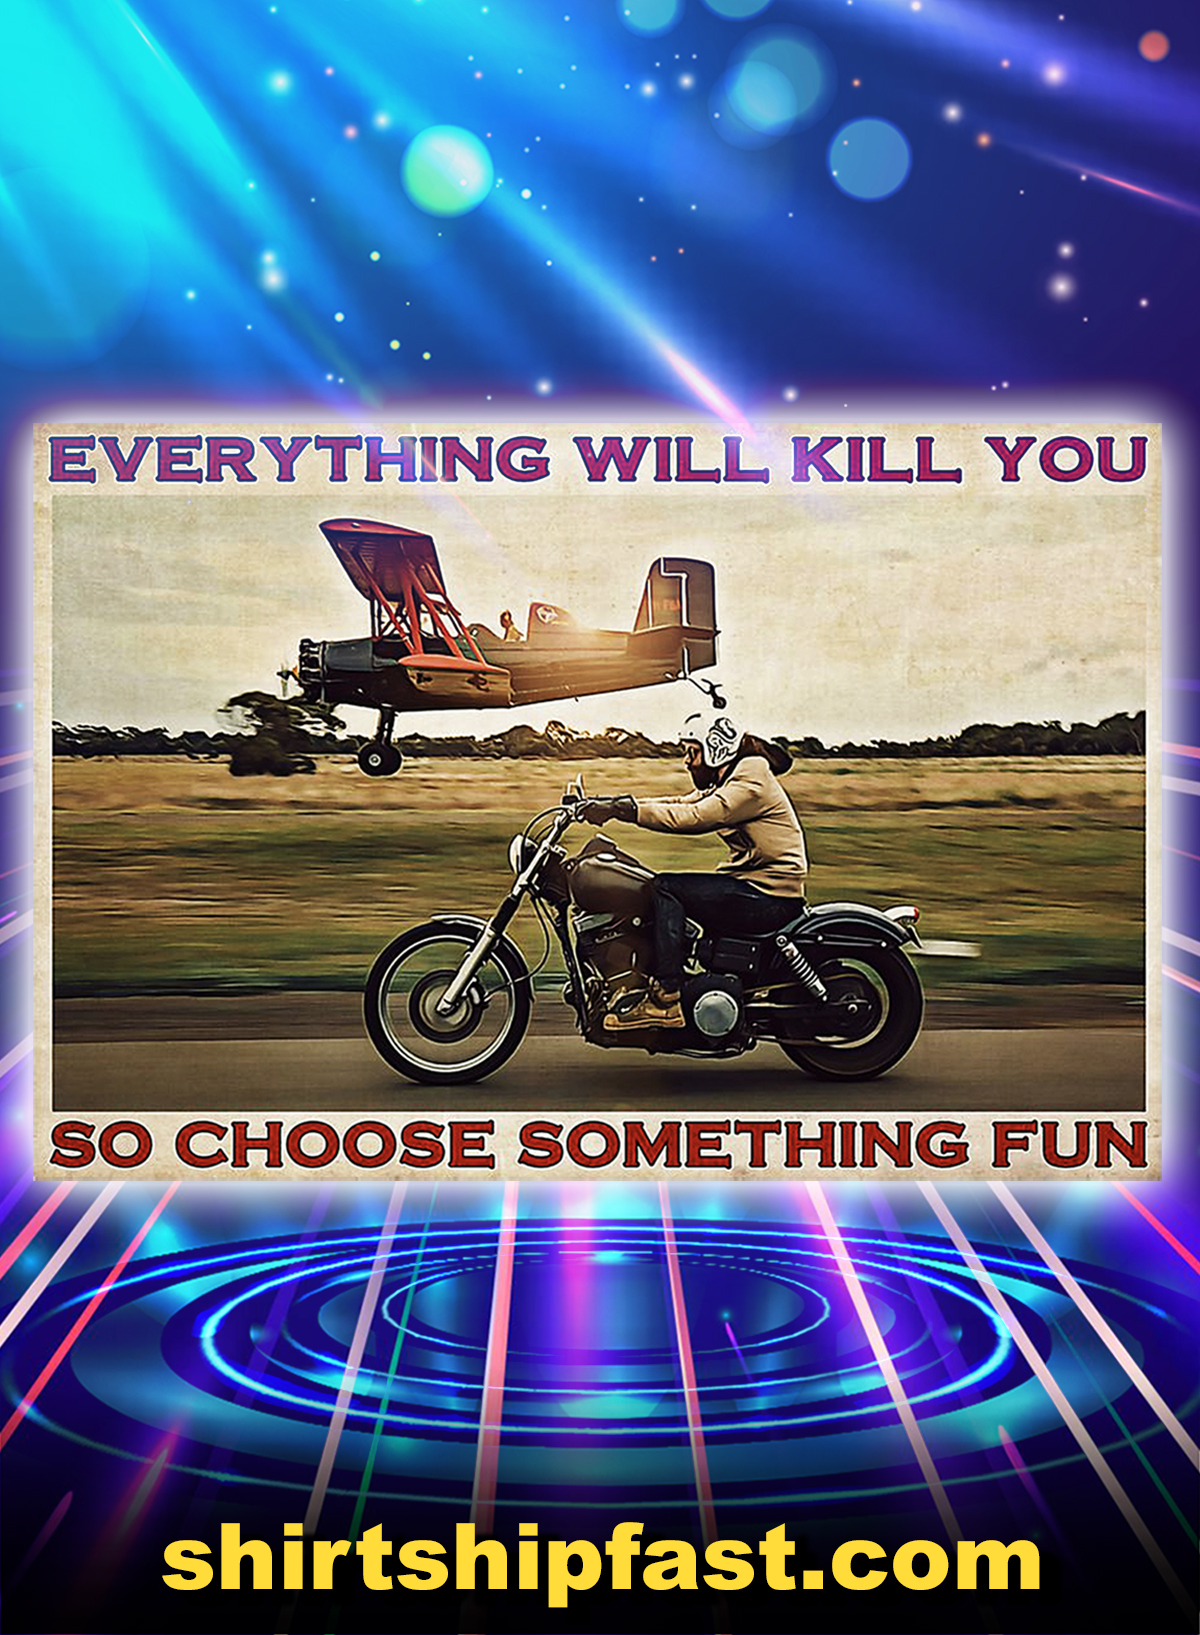 Motorbike airplane everything will kill you so choose something fun poster - A1